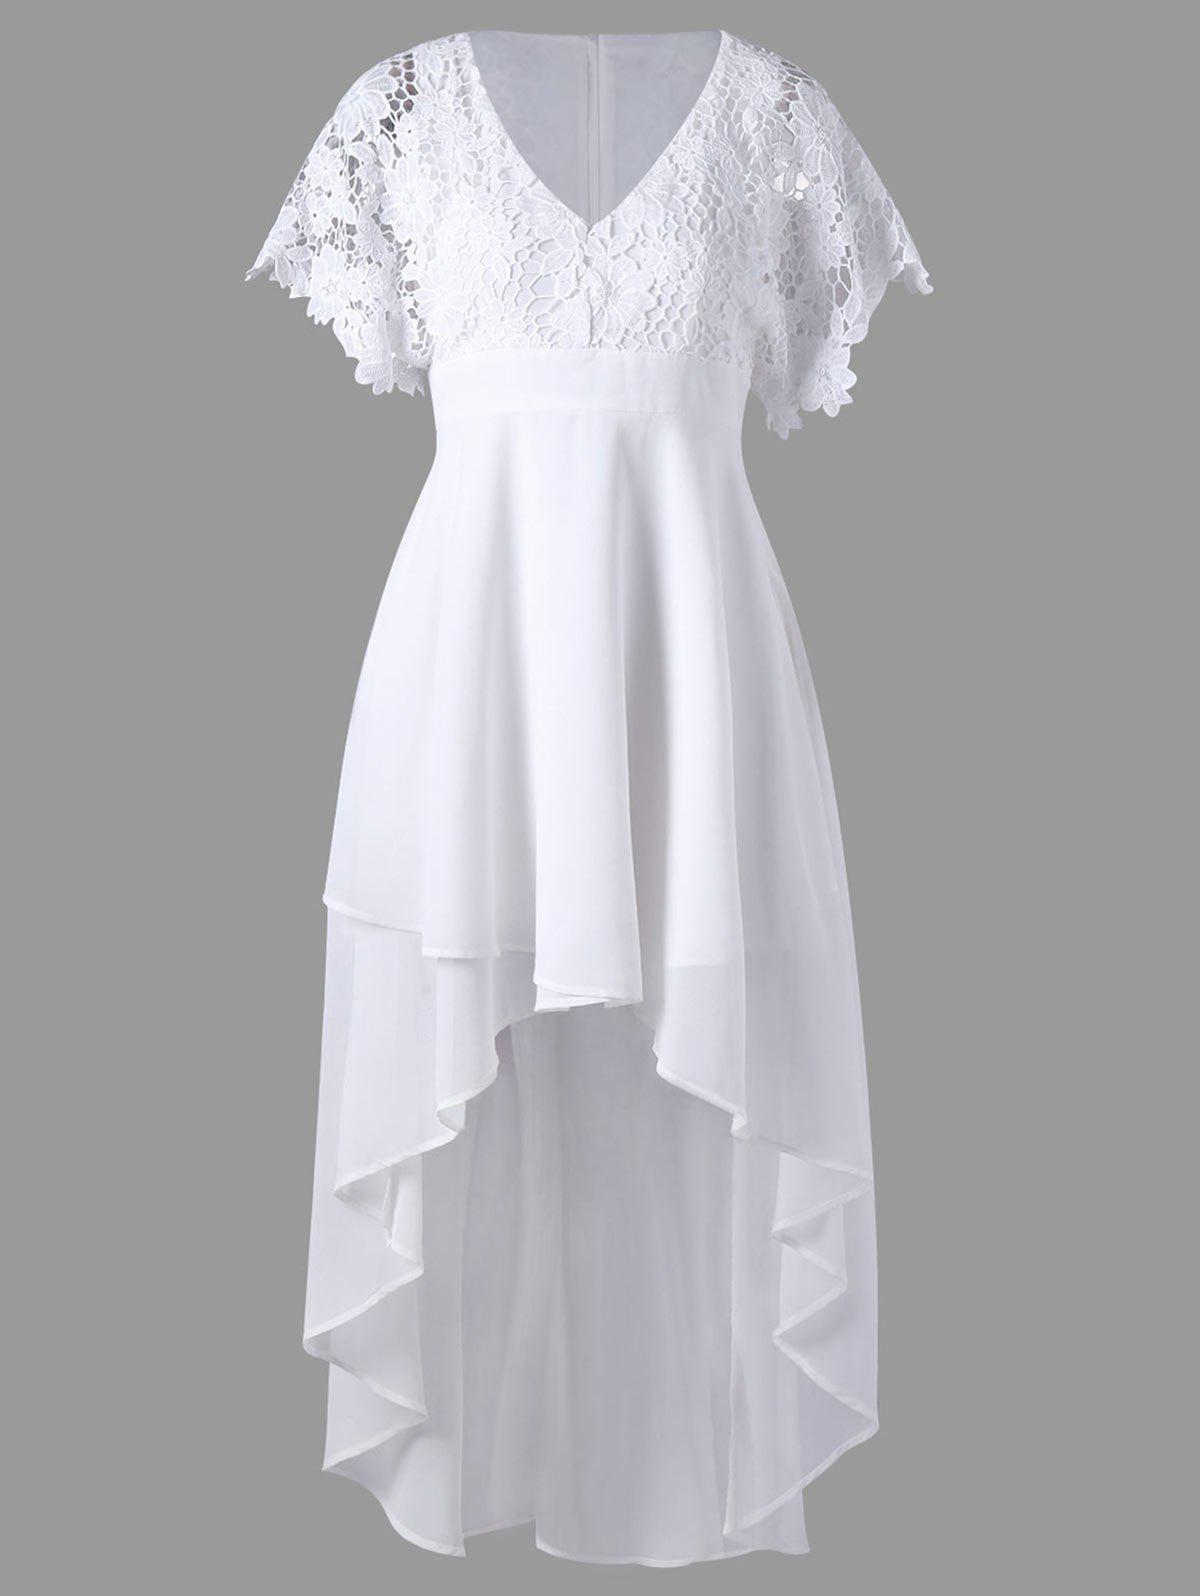 Lace Panel High Low Long Flowy DressWOMEN<br><br>Size: M; Color: WHITE; Style: Brief; Material: Polyester; Silhouette: A-Line; Dresses Length: Mid-Calf; Neckline: V-Neck; Sleeve Length: Short Sleeves; Embellishment: Lace; Pattern Type: Floral; With Belt: No; Season: Summer; Weight: 0.4200kg; Package Contents: 1 x Dress;